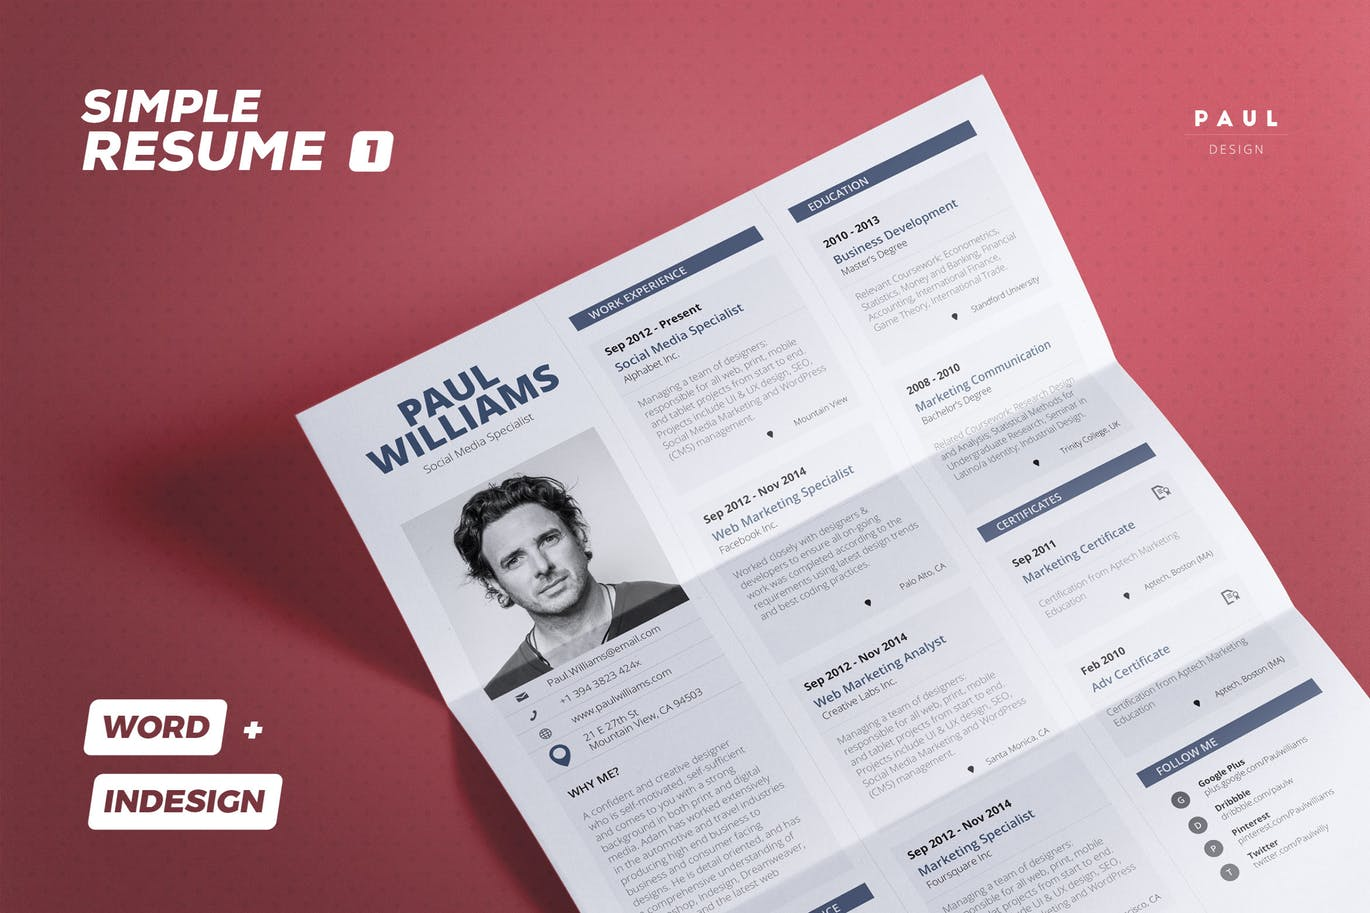 The Best CV & Resume Templates: 50 Examples 10